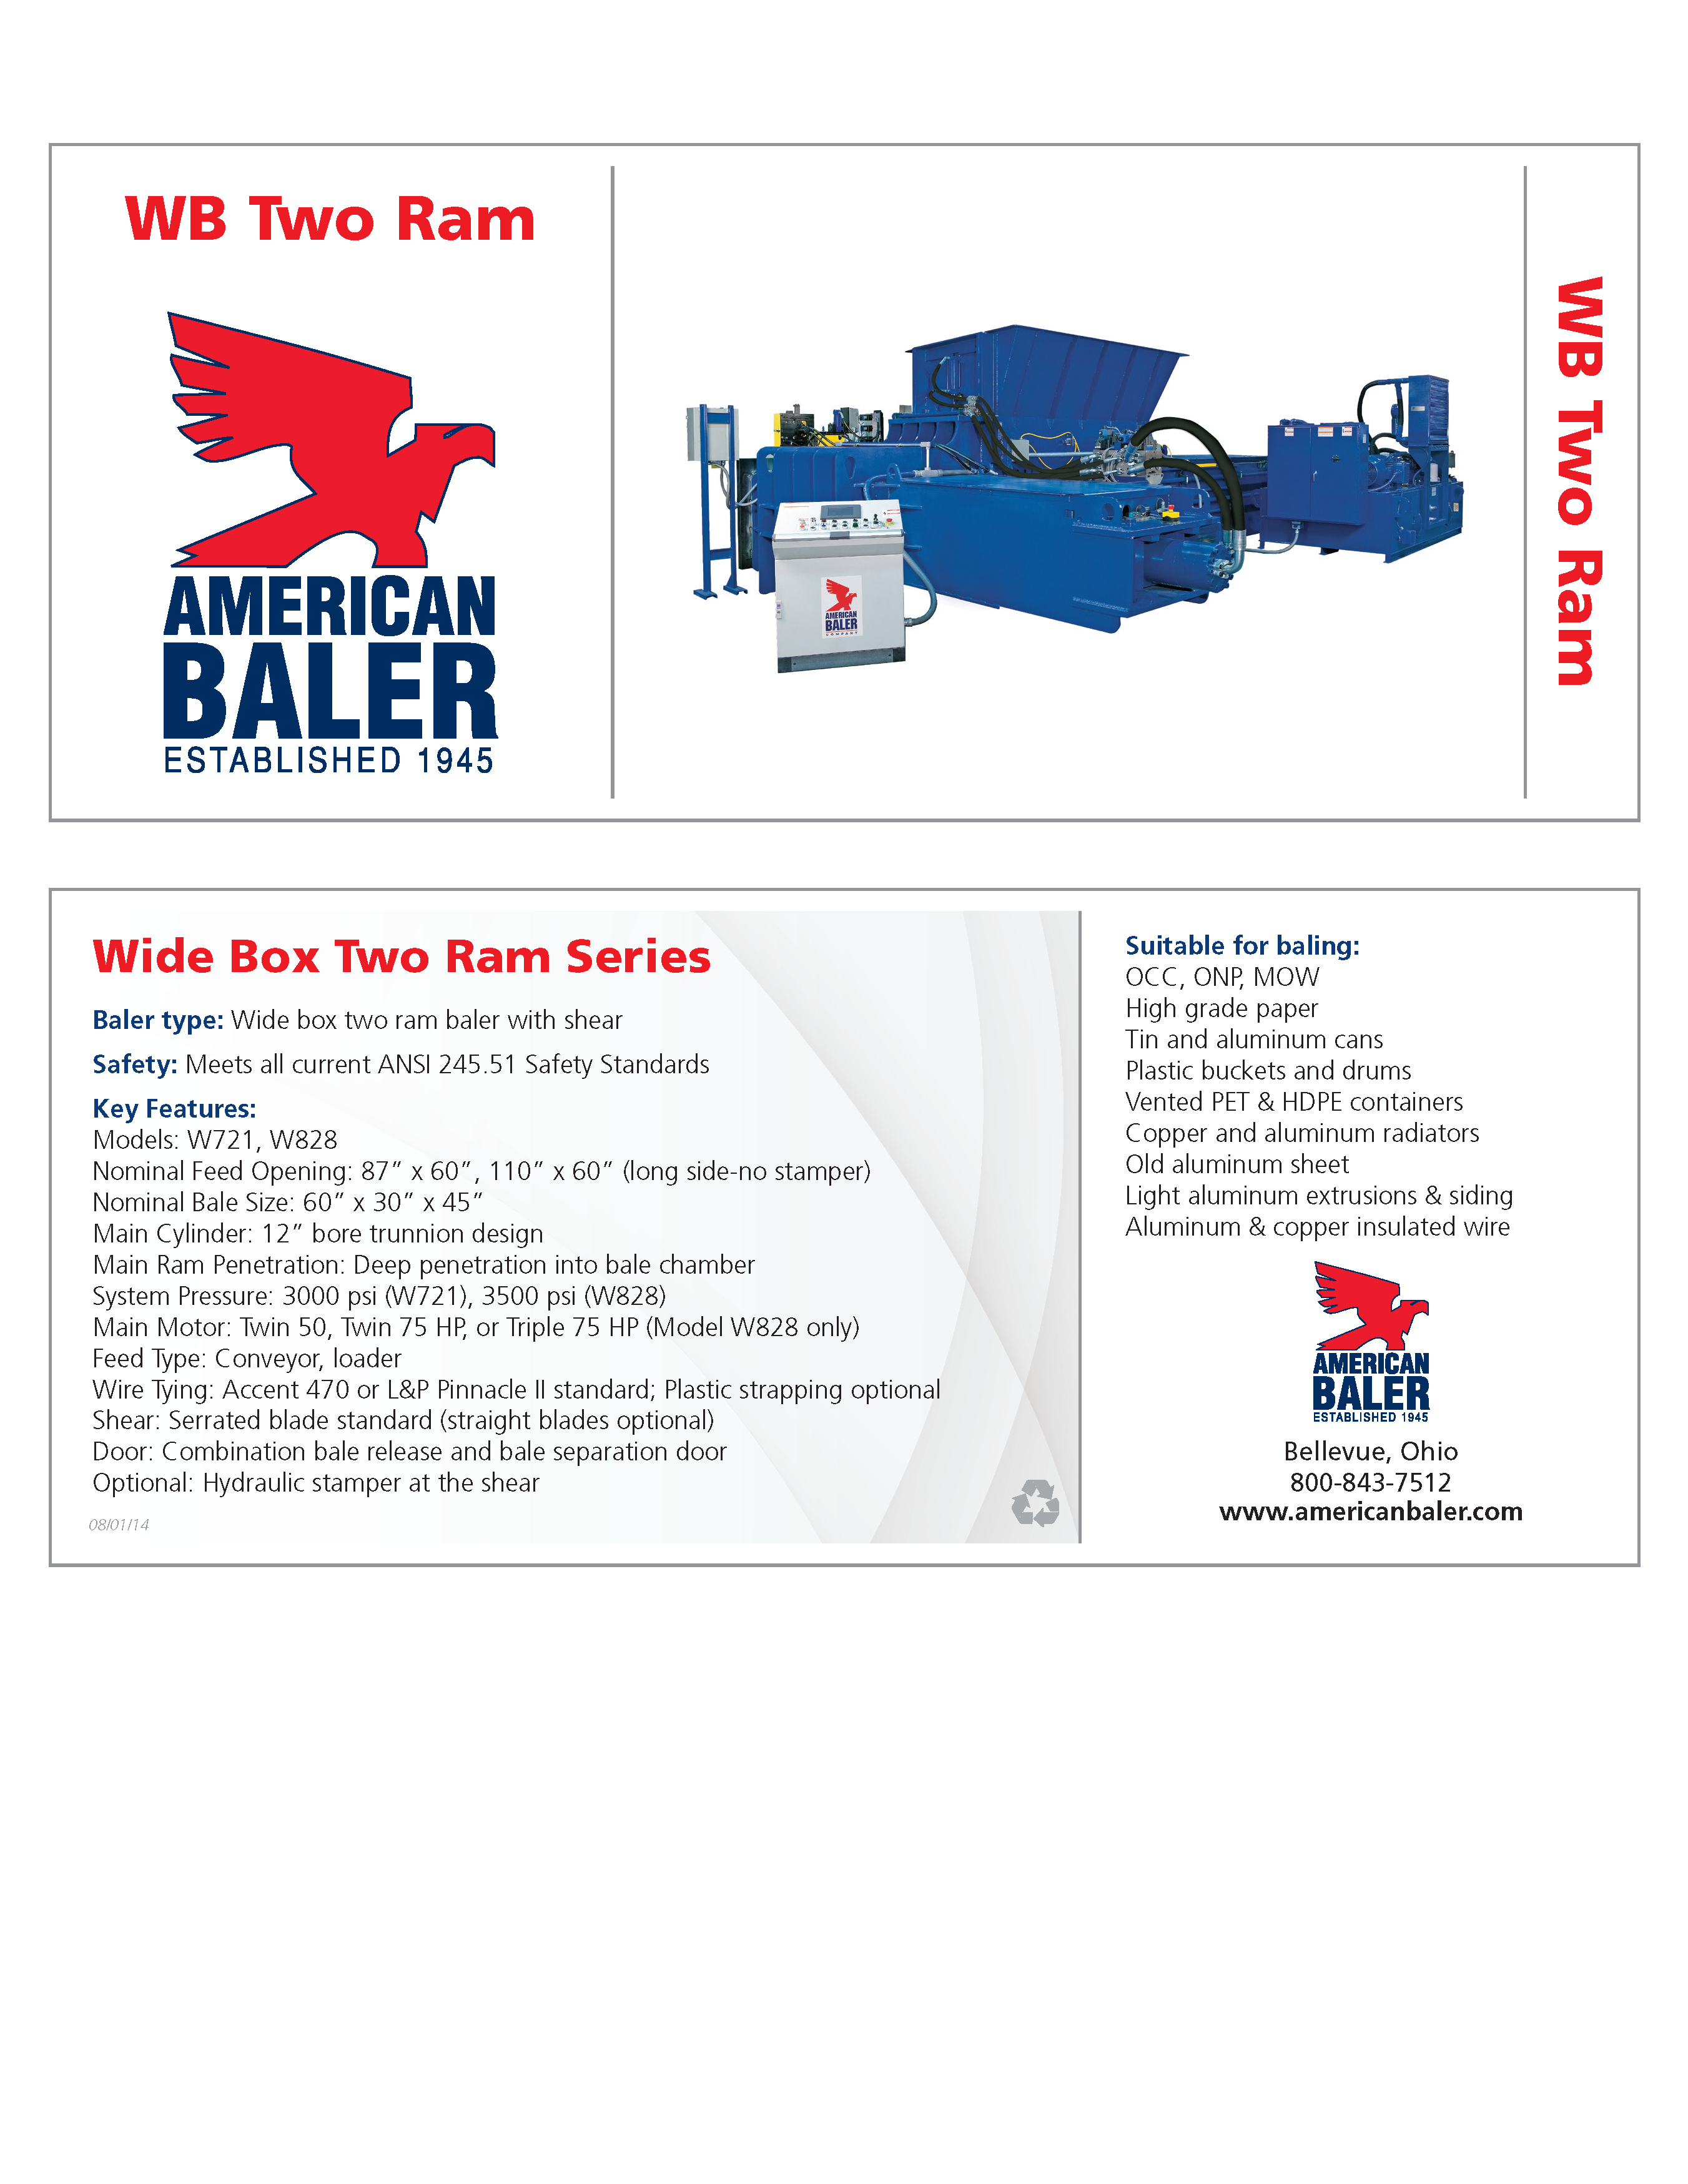 Learn more about the WB Series Balers in the American Baler Brochure.